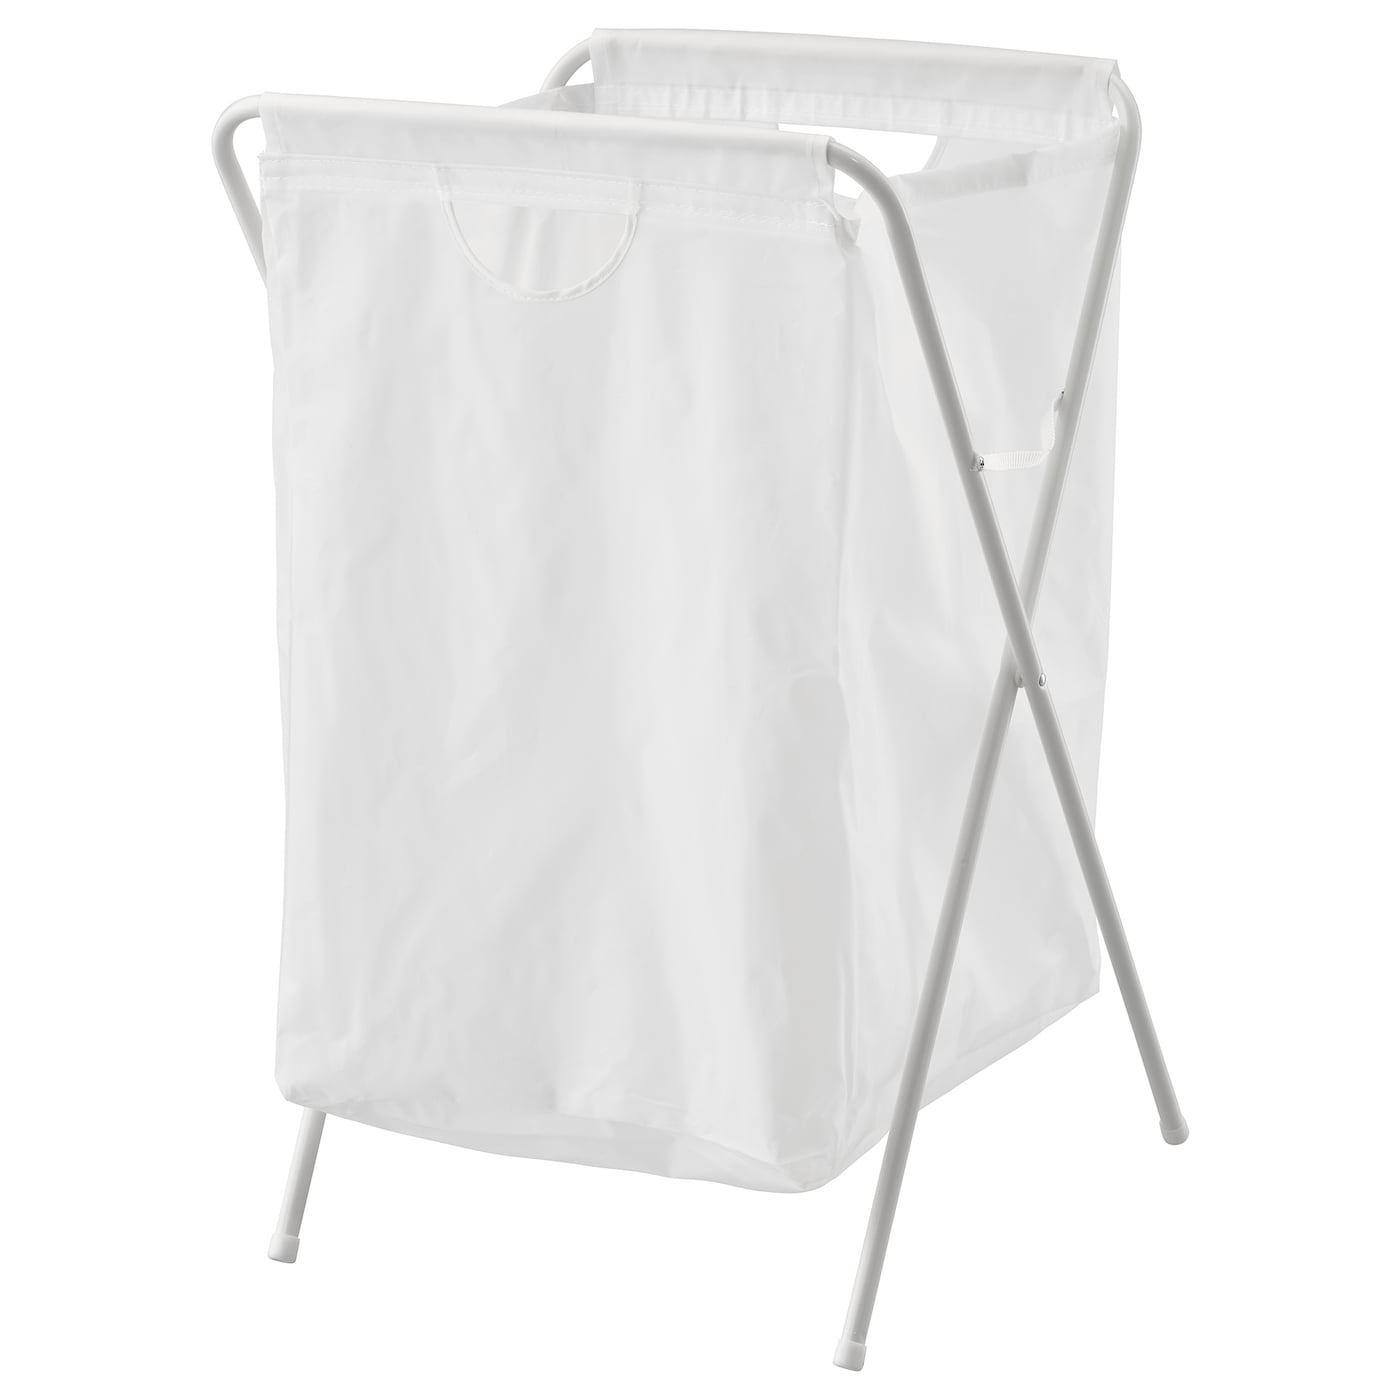 JÄll Laundry Bag With Stand White Ikea